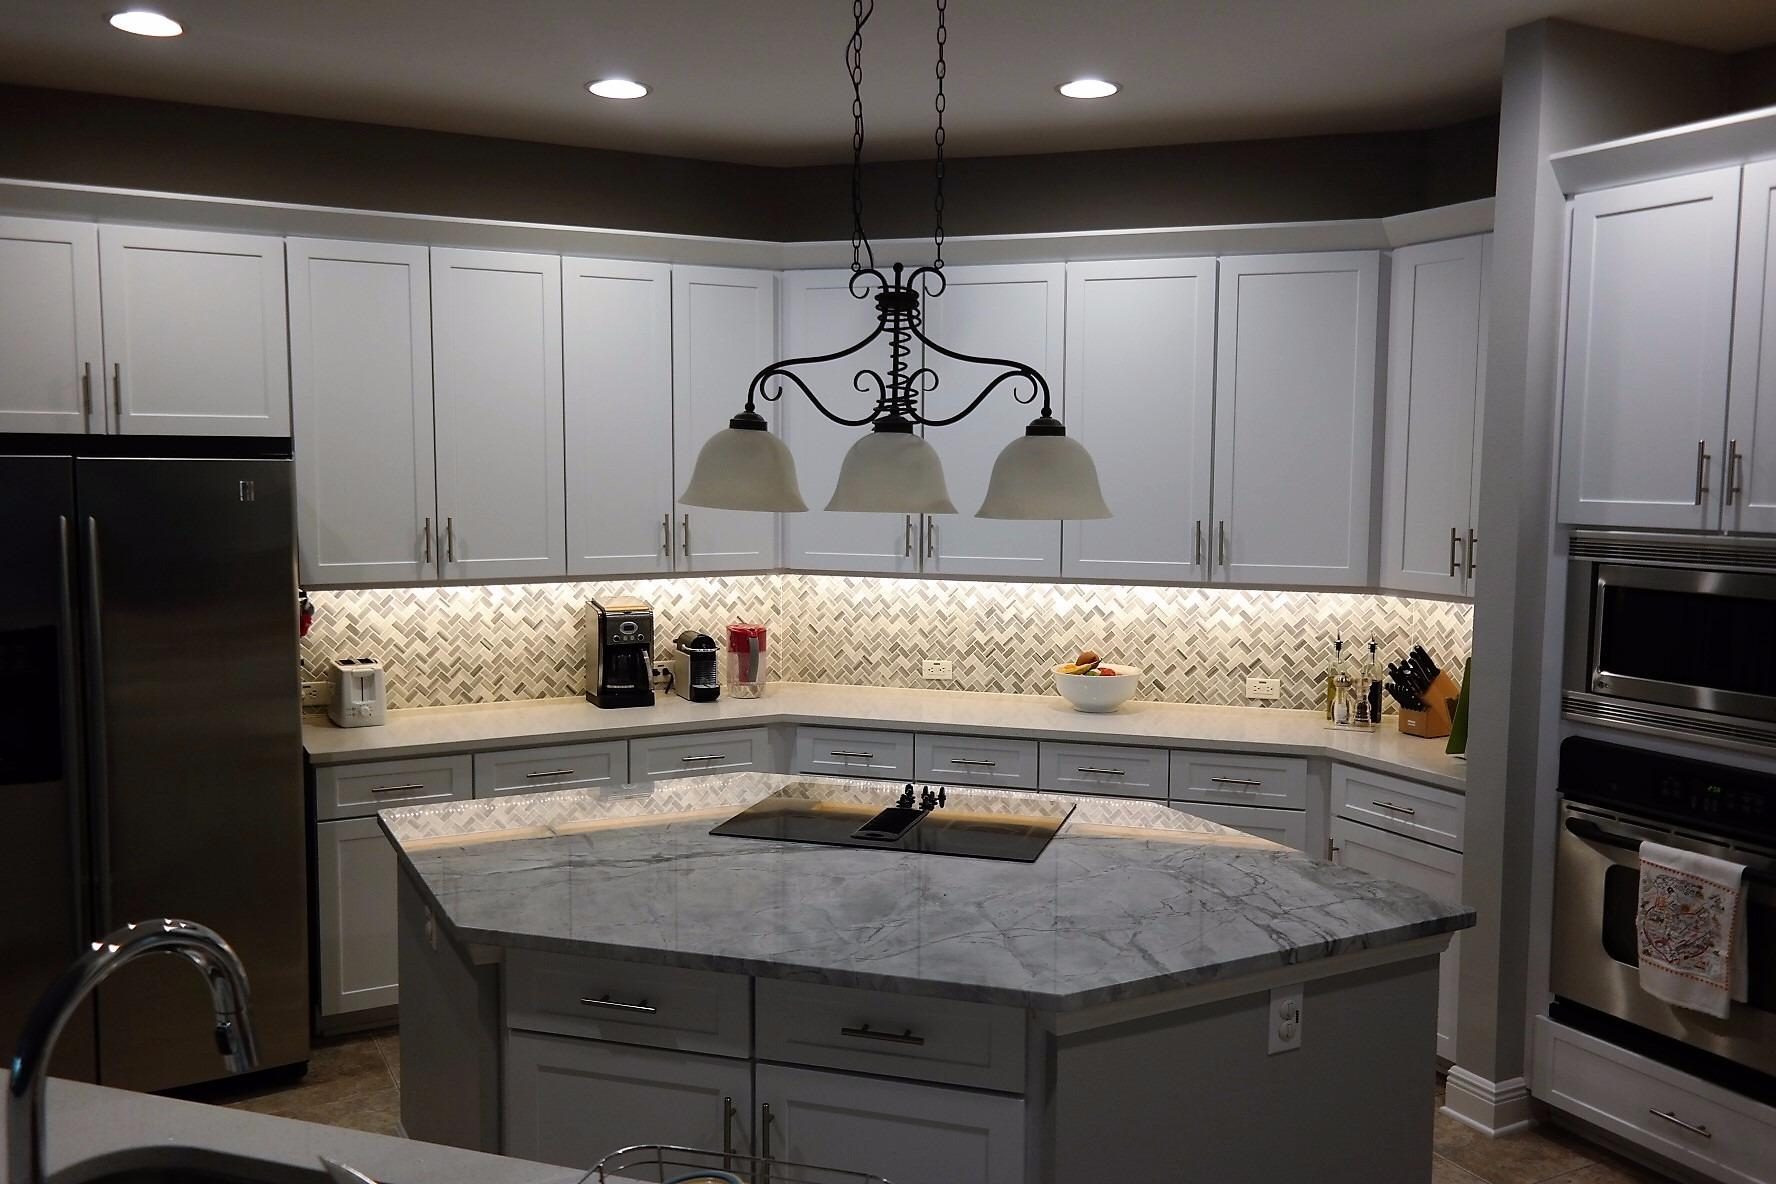 kitchen cabinets zephyrhills fl re a door kitchen cabinets refacing tampa fl besto 21492